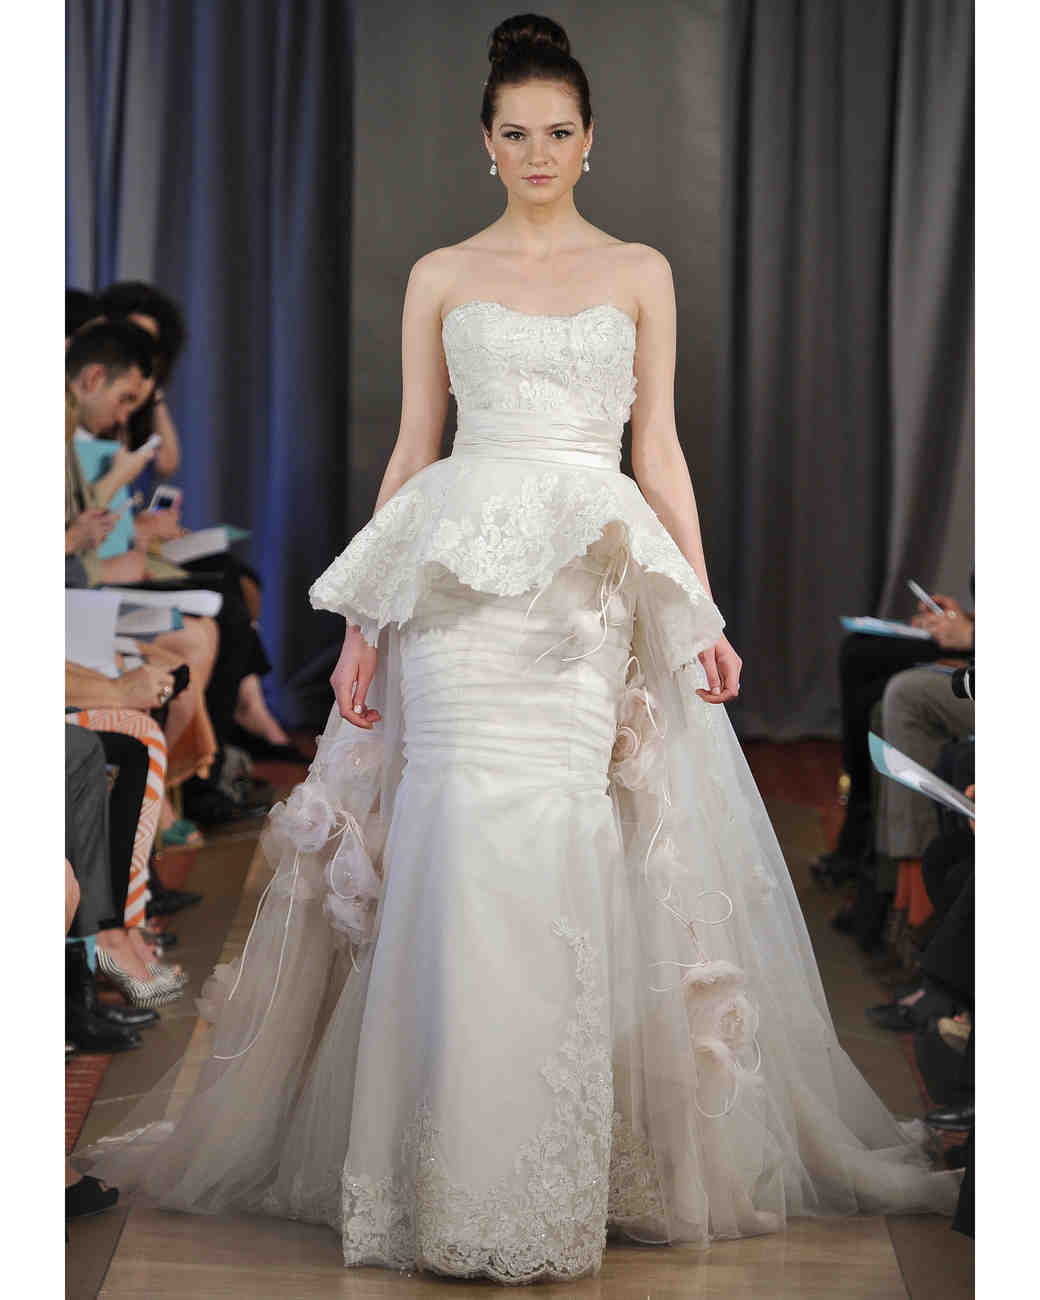 Peplum Wedding Dresses, Spring 2013 Bridal Fashion Week ...